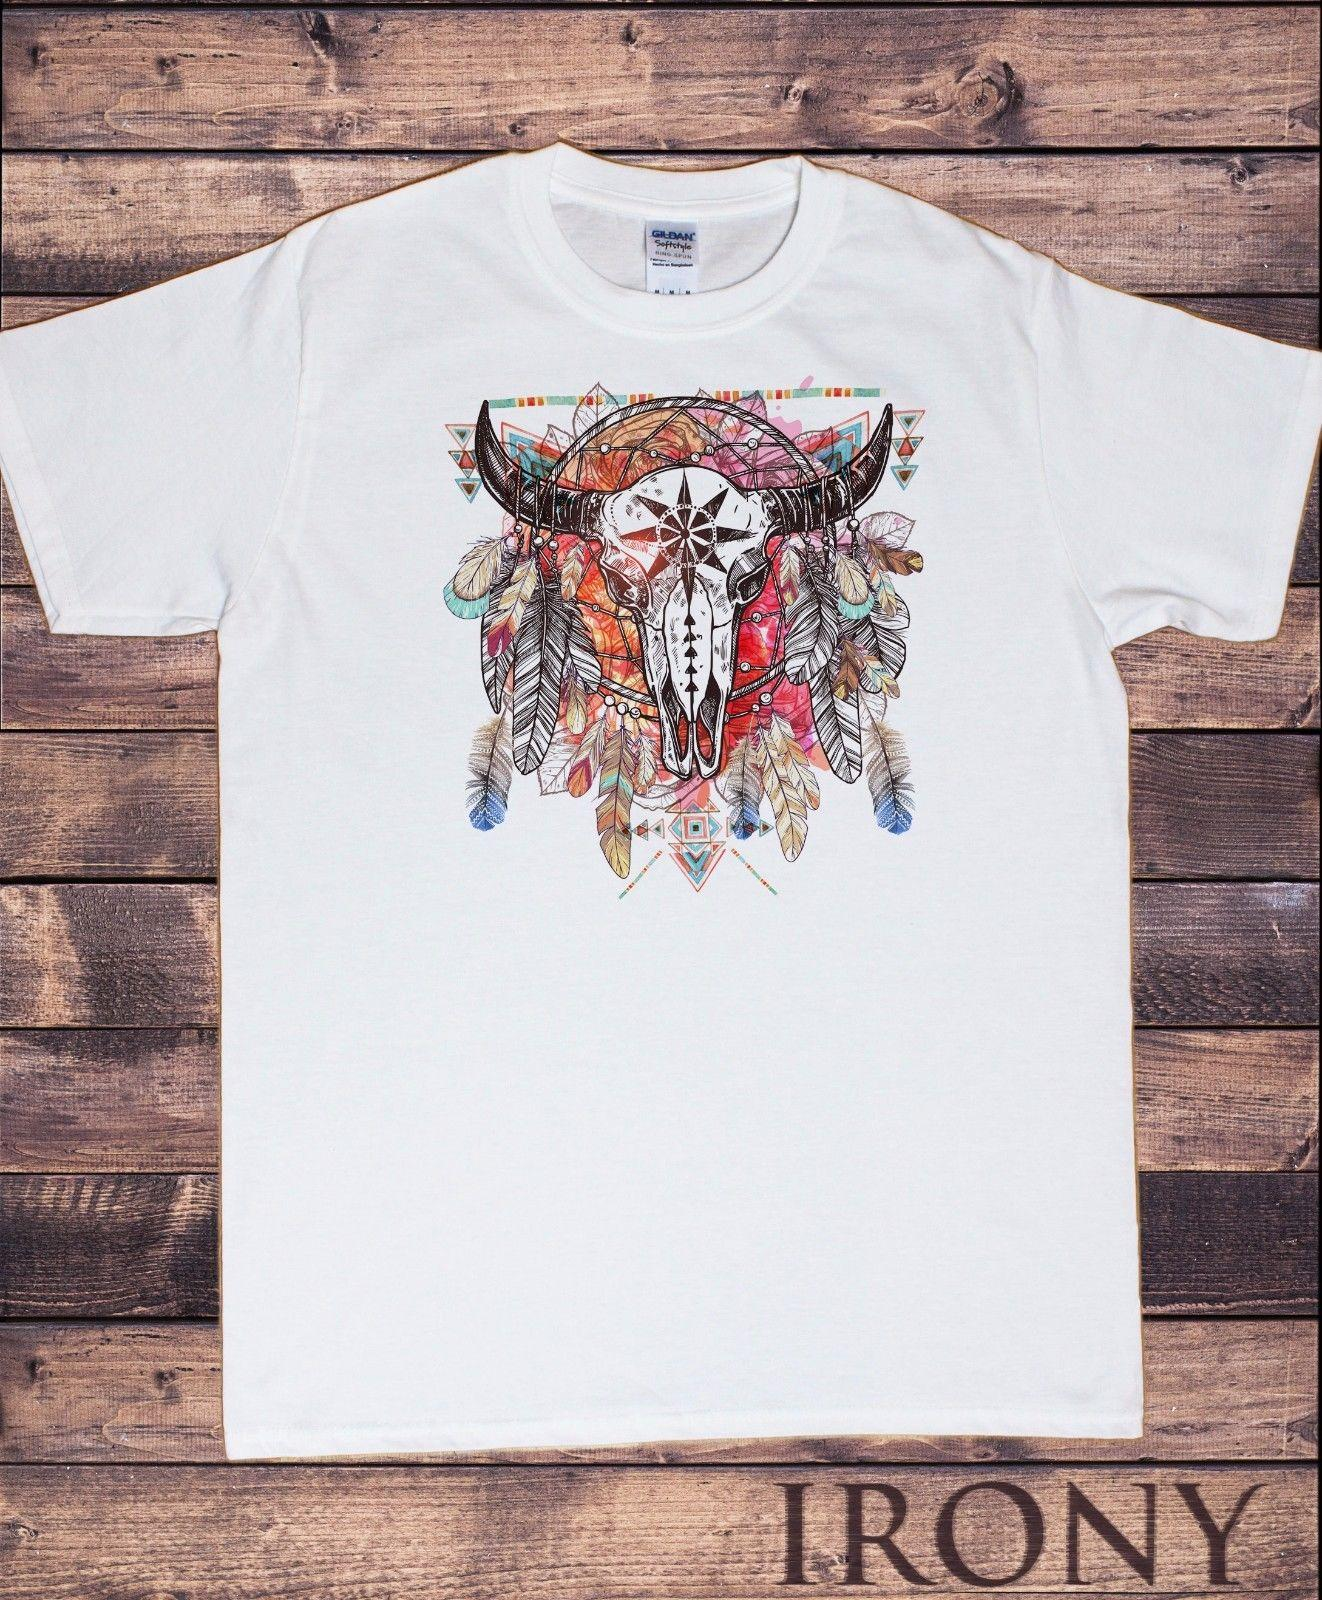 9fb79752 Men's T Shirt Tribal Red Indian Animal Skull Head Native American Feathers  TS958 Funny Unisex Casual Tee Gift T Shirt Very Funny T Shirts Witty Tee  Shirts ...